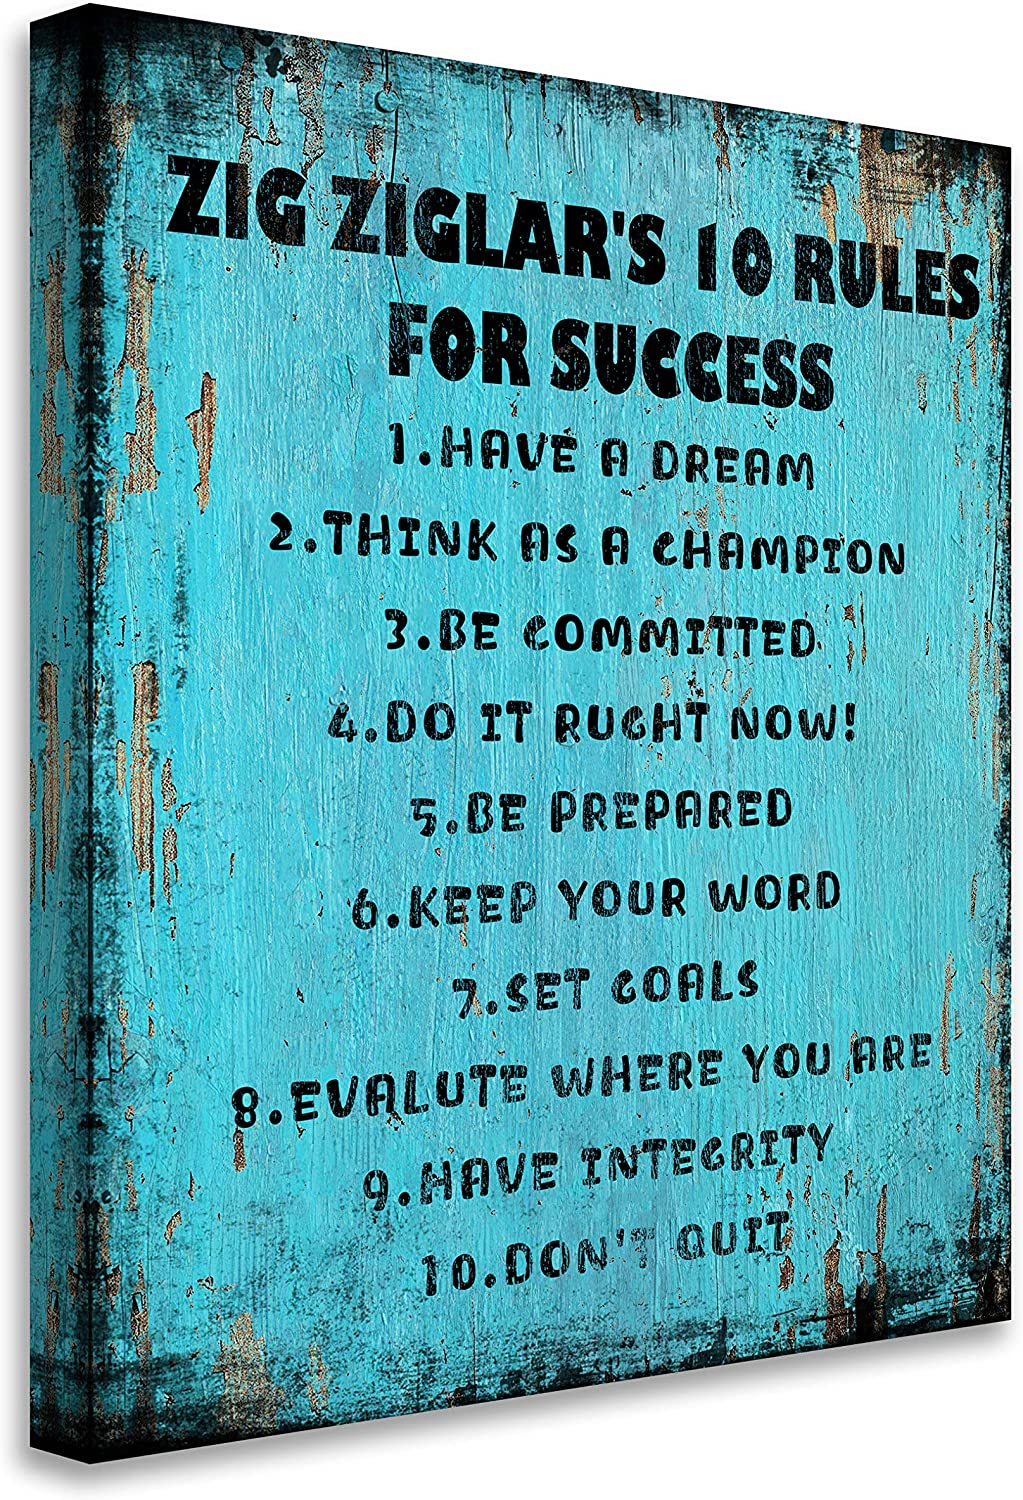 Blueyearn Zig Ziglar's 10 Rules for Success Inspirational Wall Art Motivational Poster Quotes Office Rustic Wall Decor for Living Room Bedroom Bathroom,11x14in